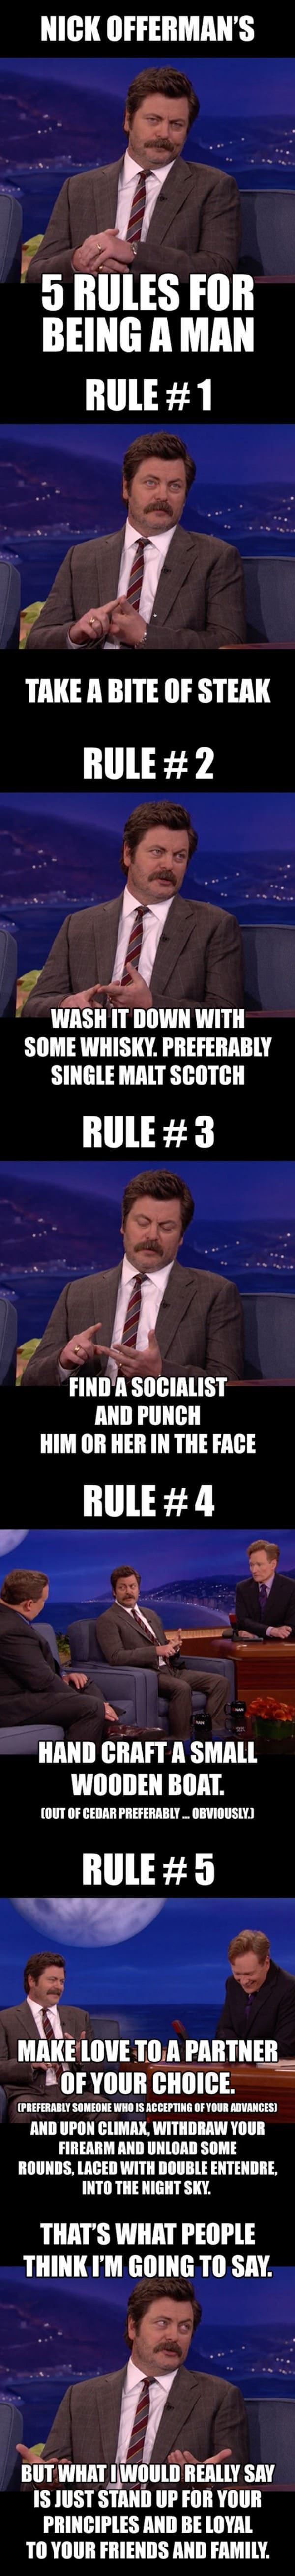 nick offerman rules being man funny picture